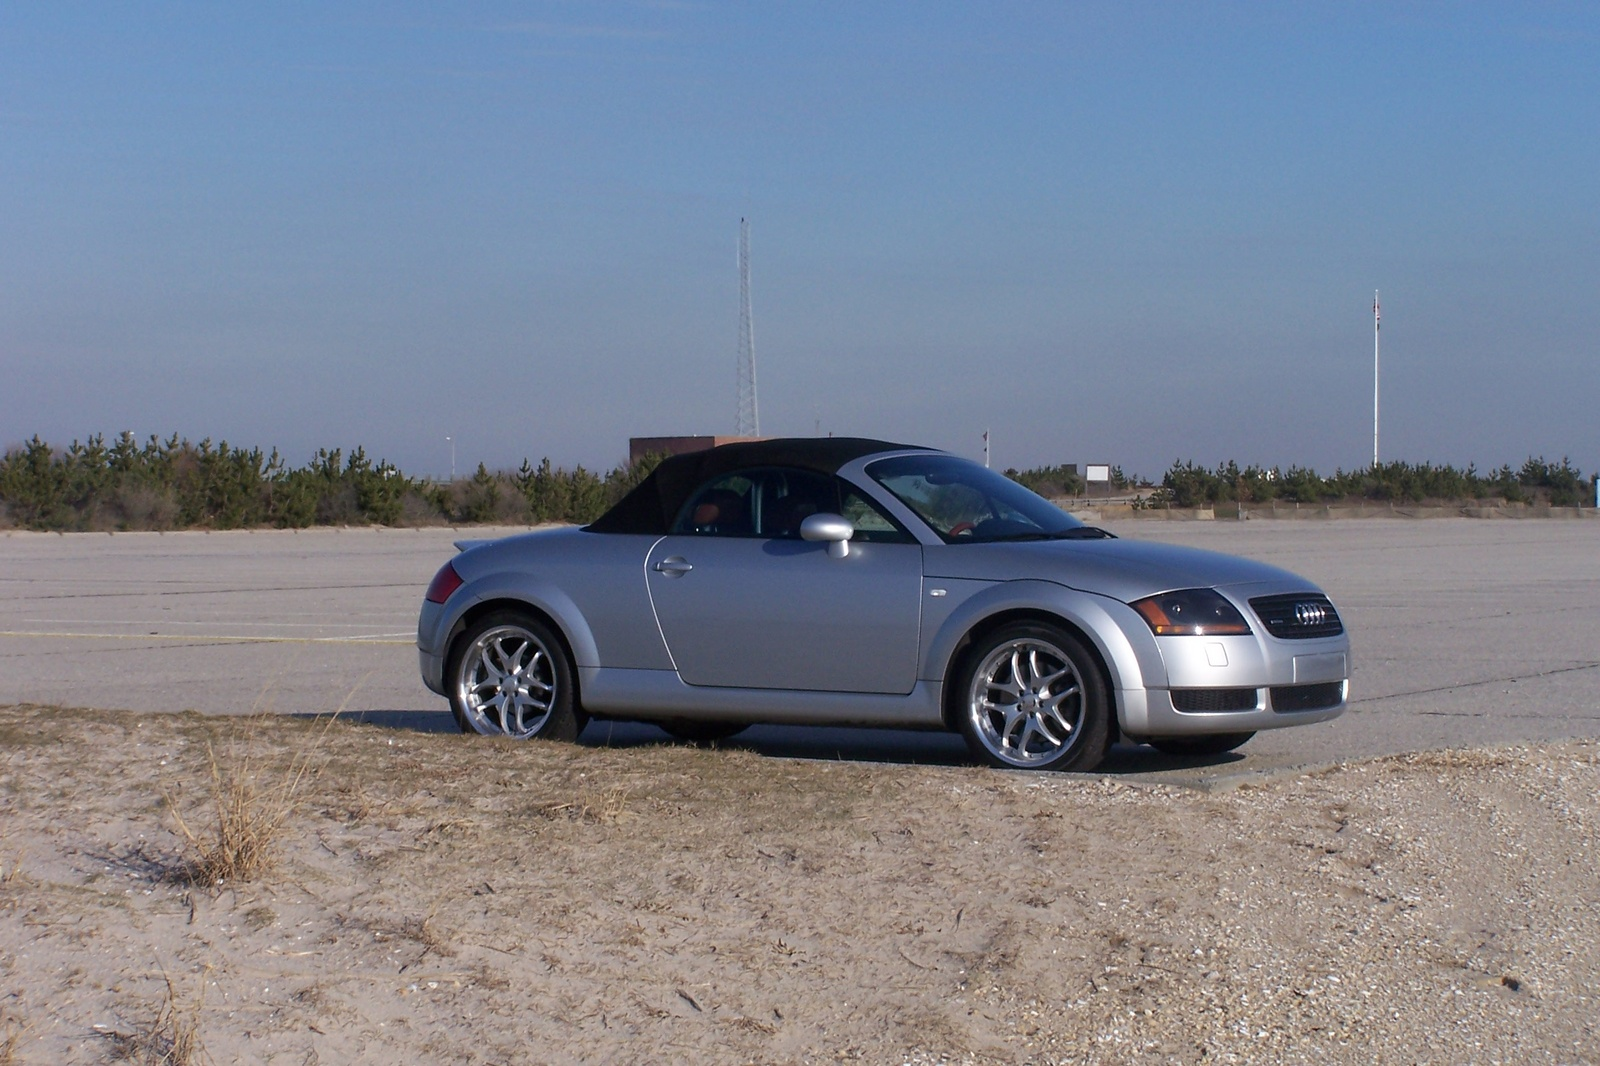 Amazoncom 2015 Audi TT Quattro Reviews Images and